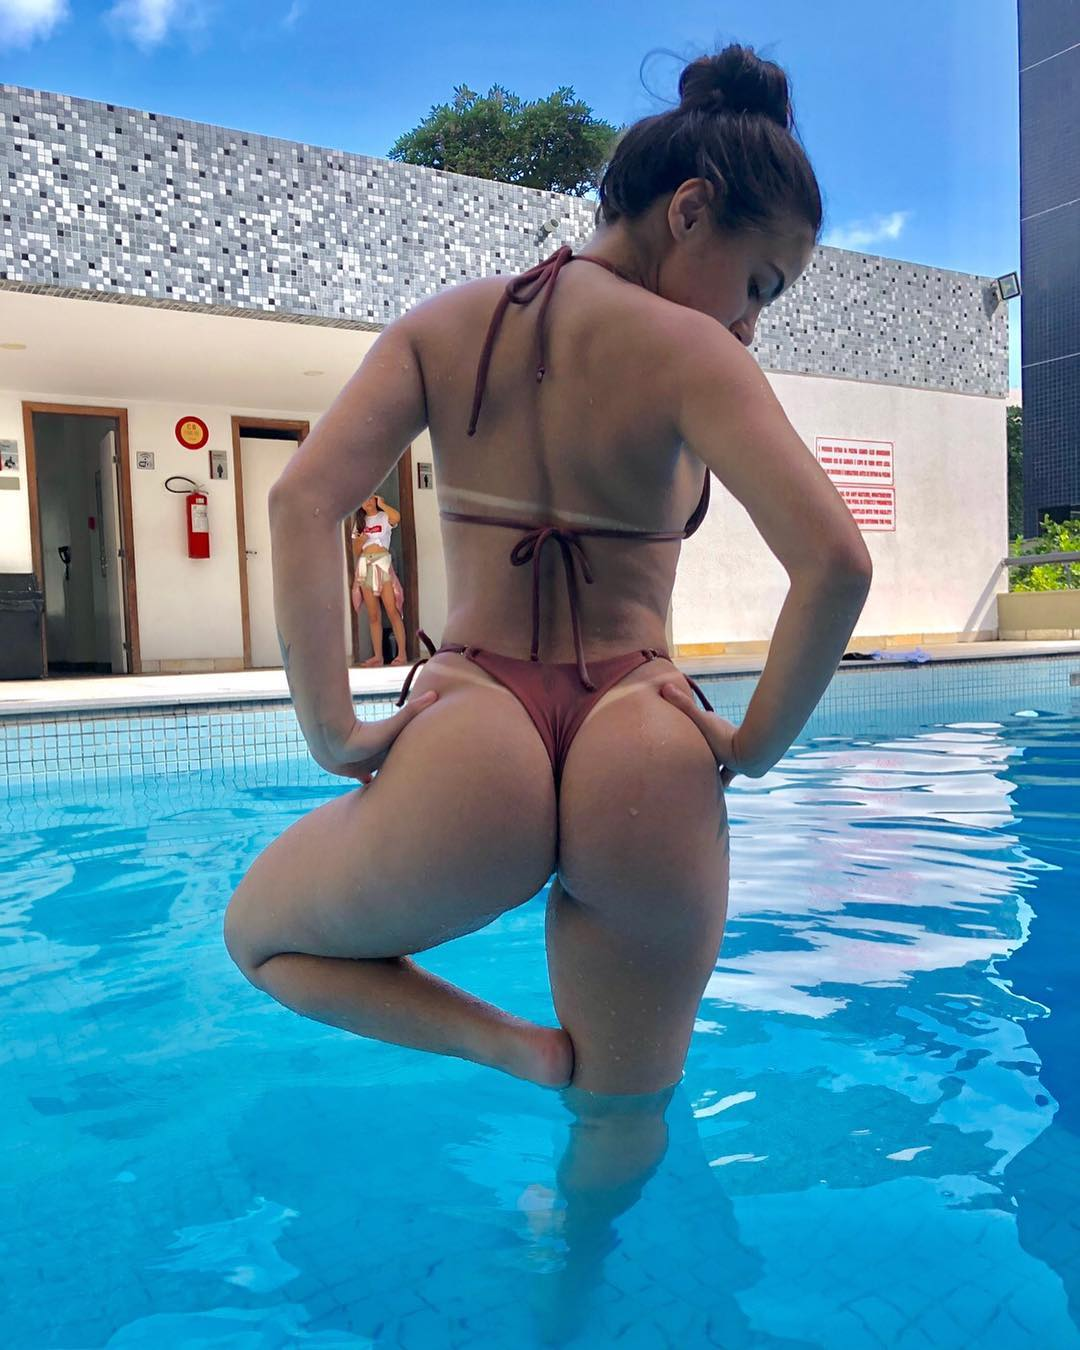 FULL VIDEO: Kellyta Tharsys Nude Onlyfans Leaked!